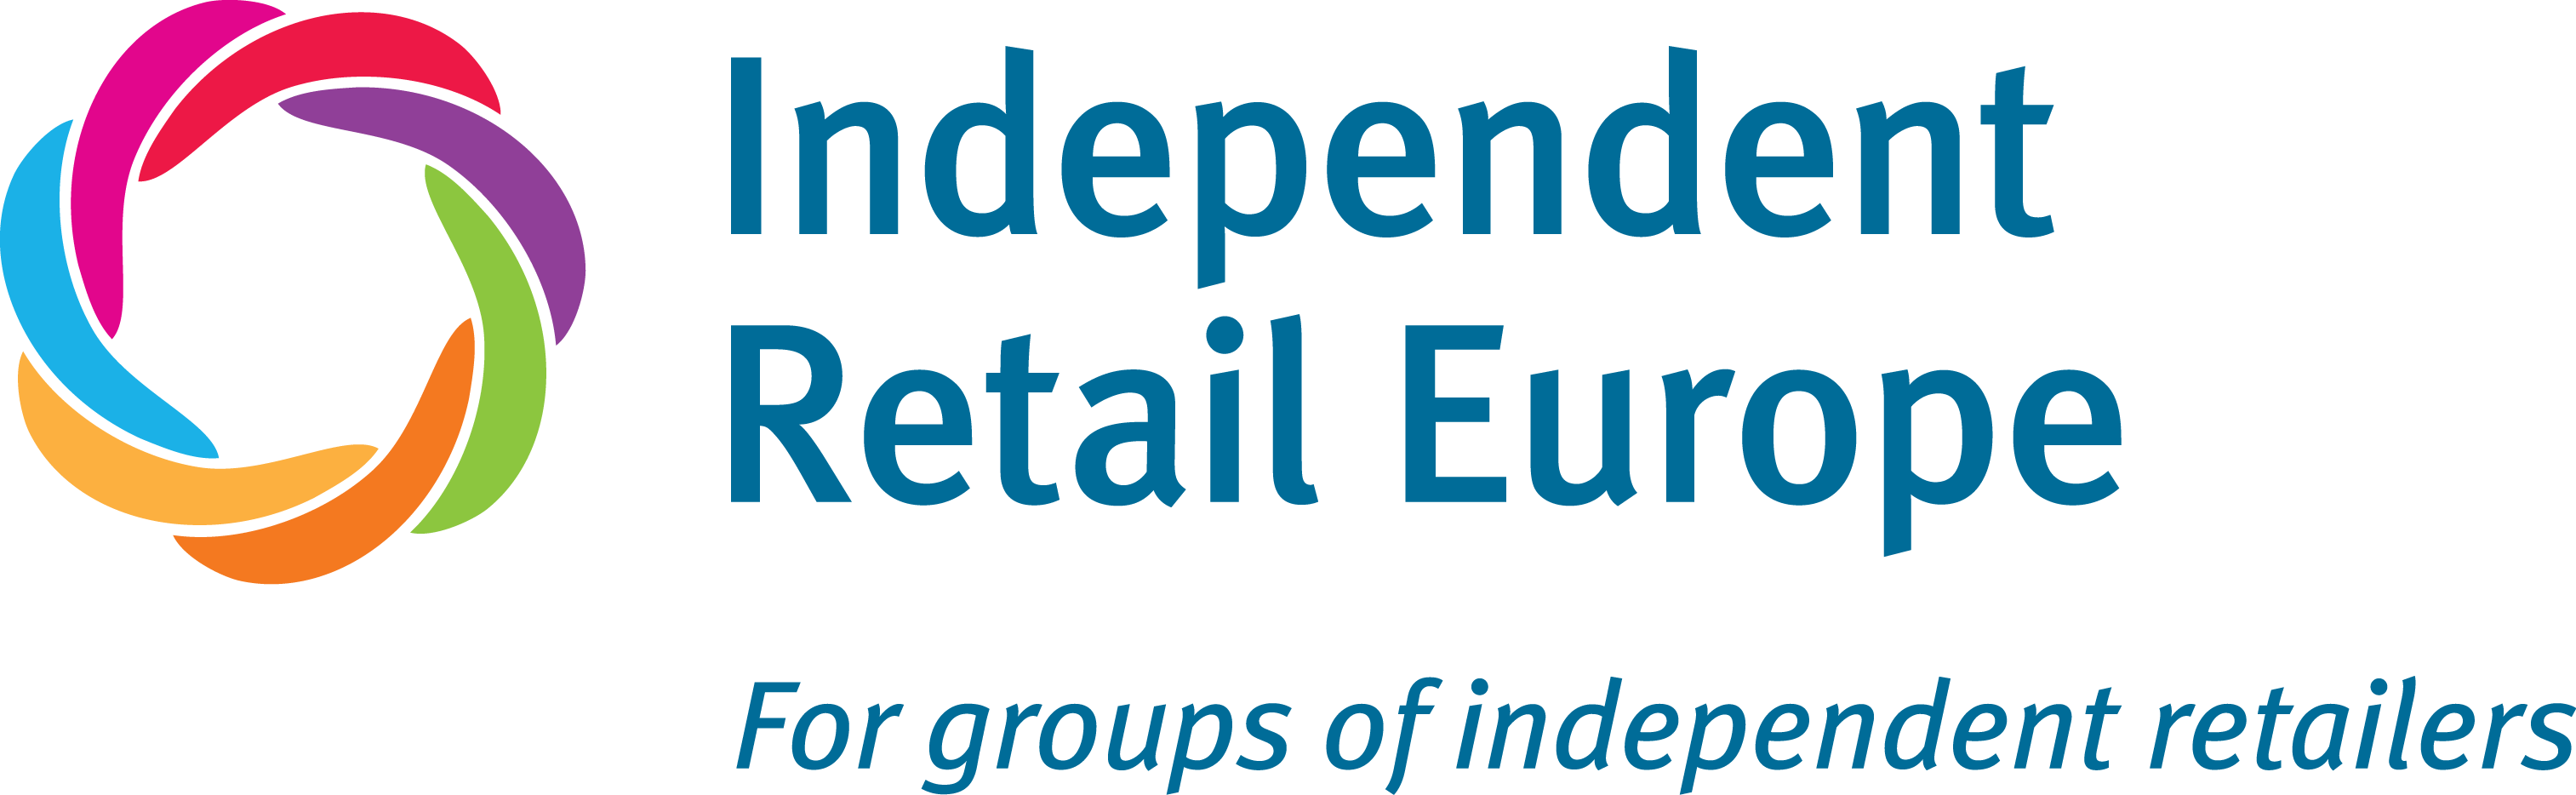 independent retail europe logo